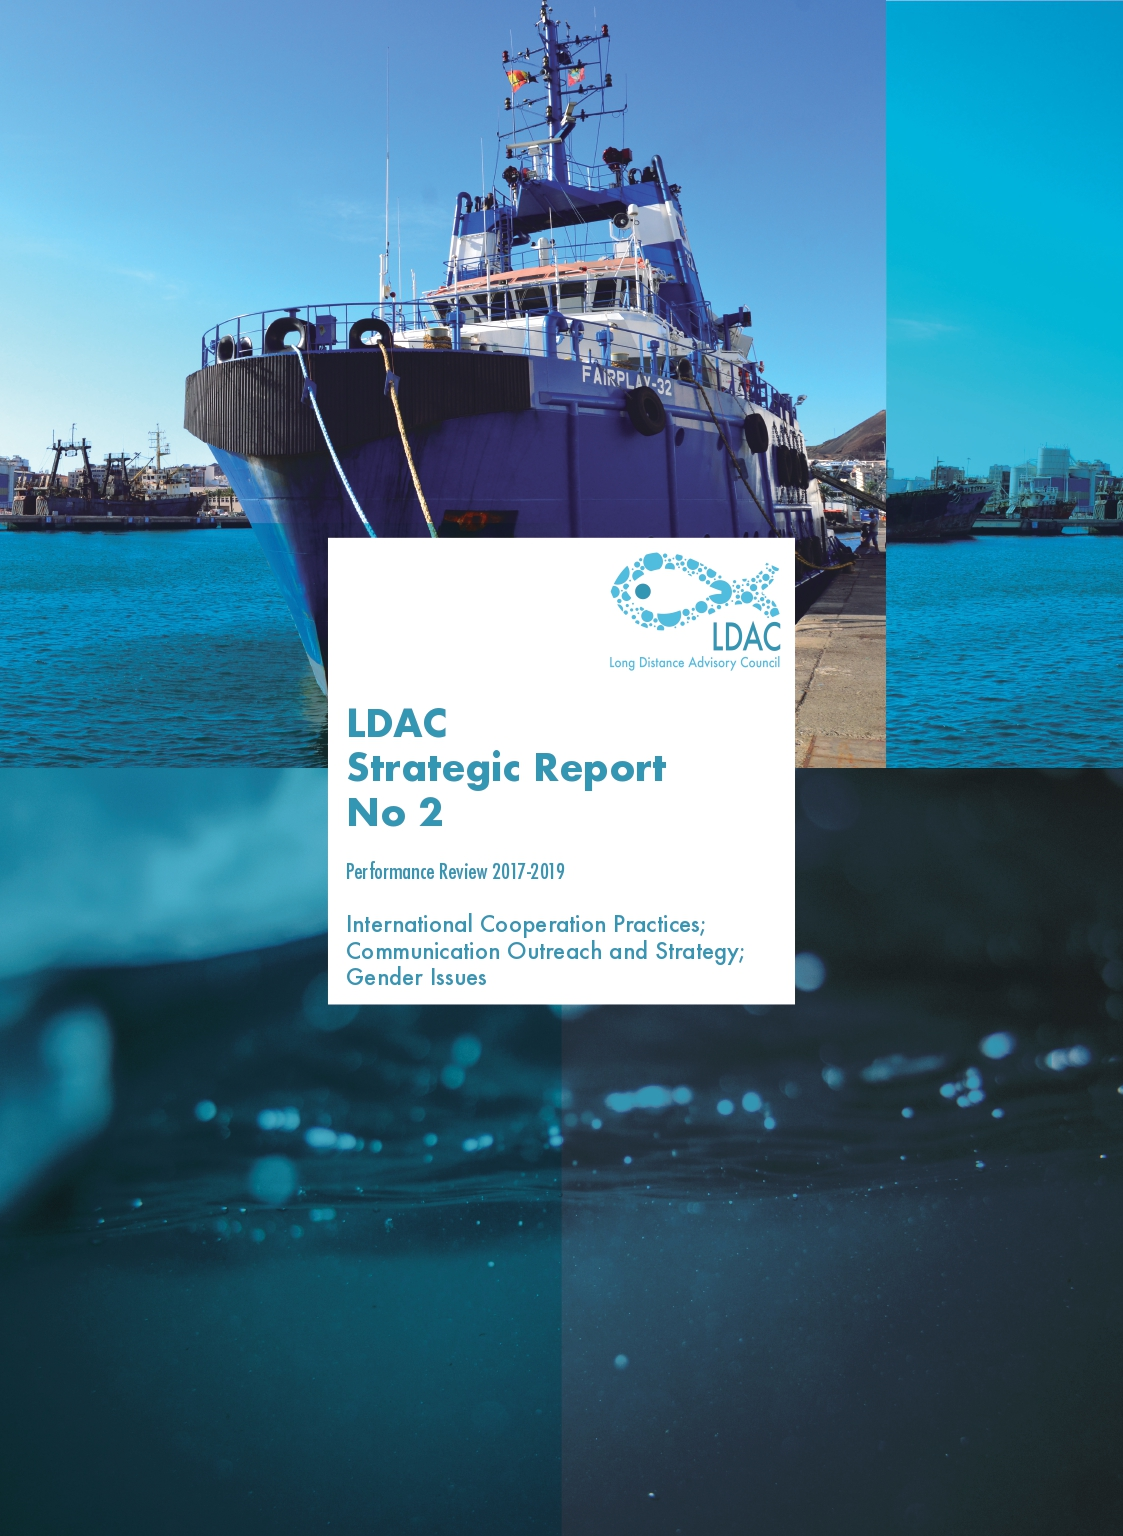 LDAC Performance Review 2020 Phase II